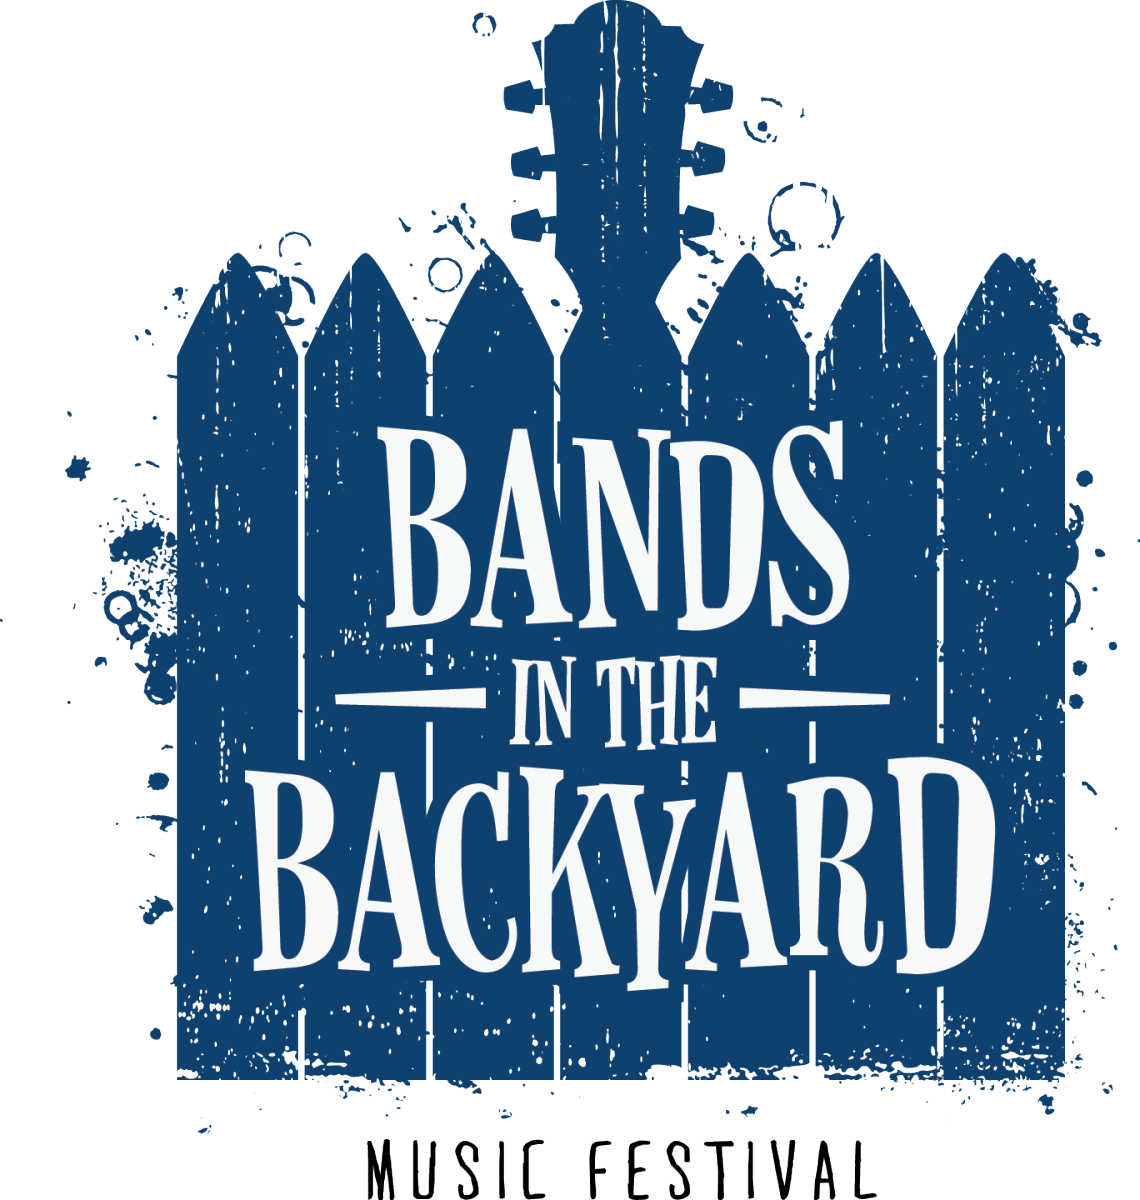 Bands in the Backyard Music Festival